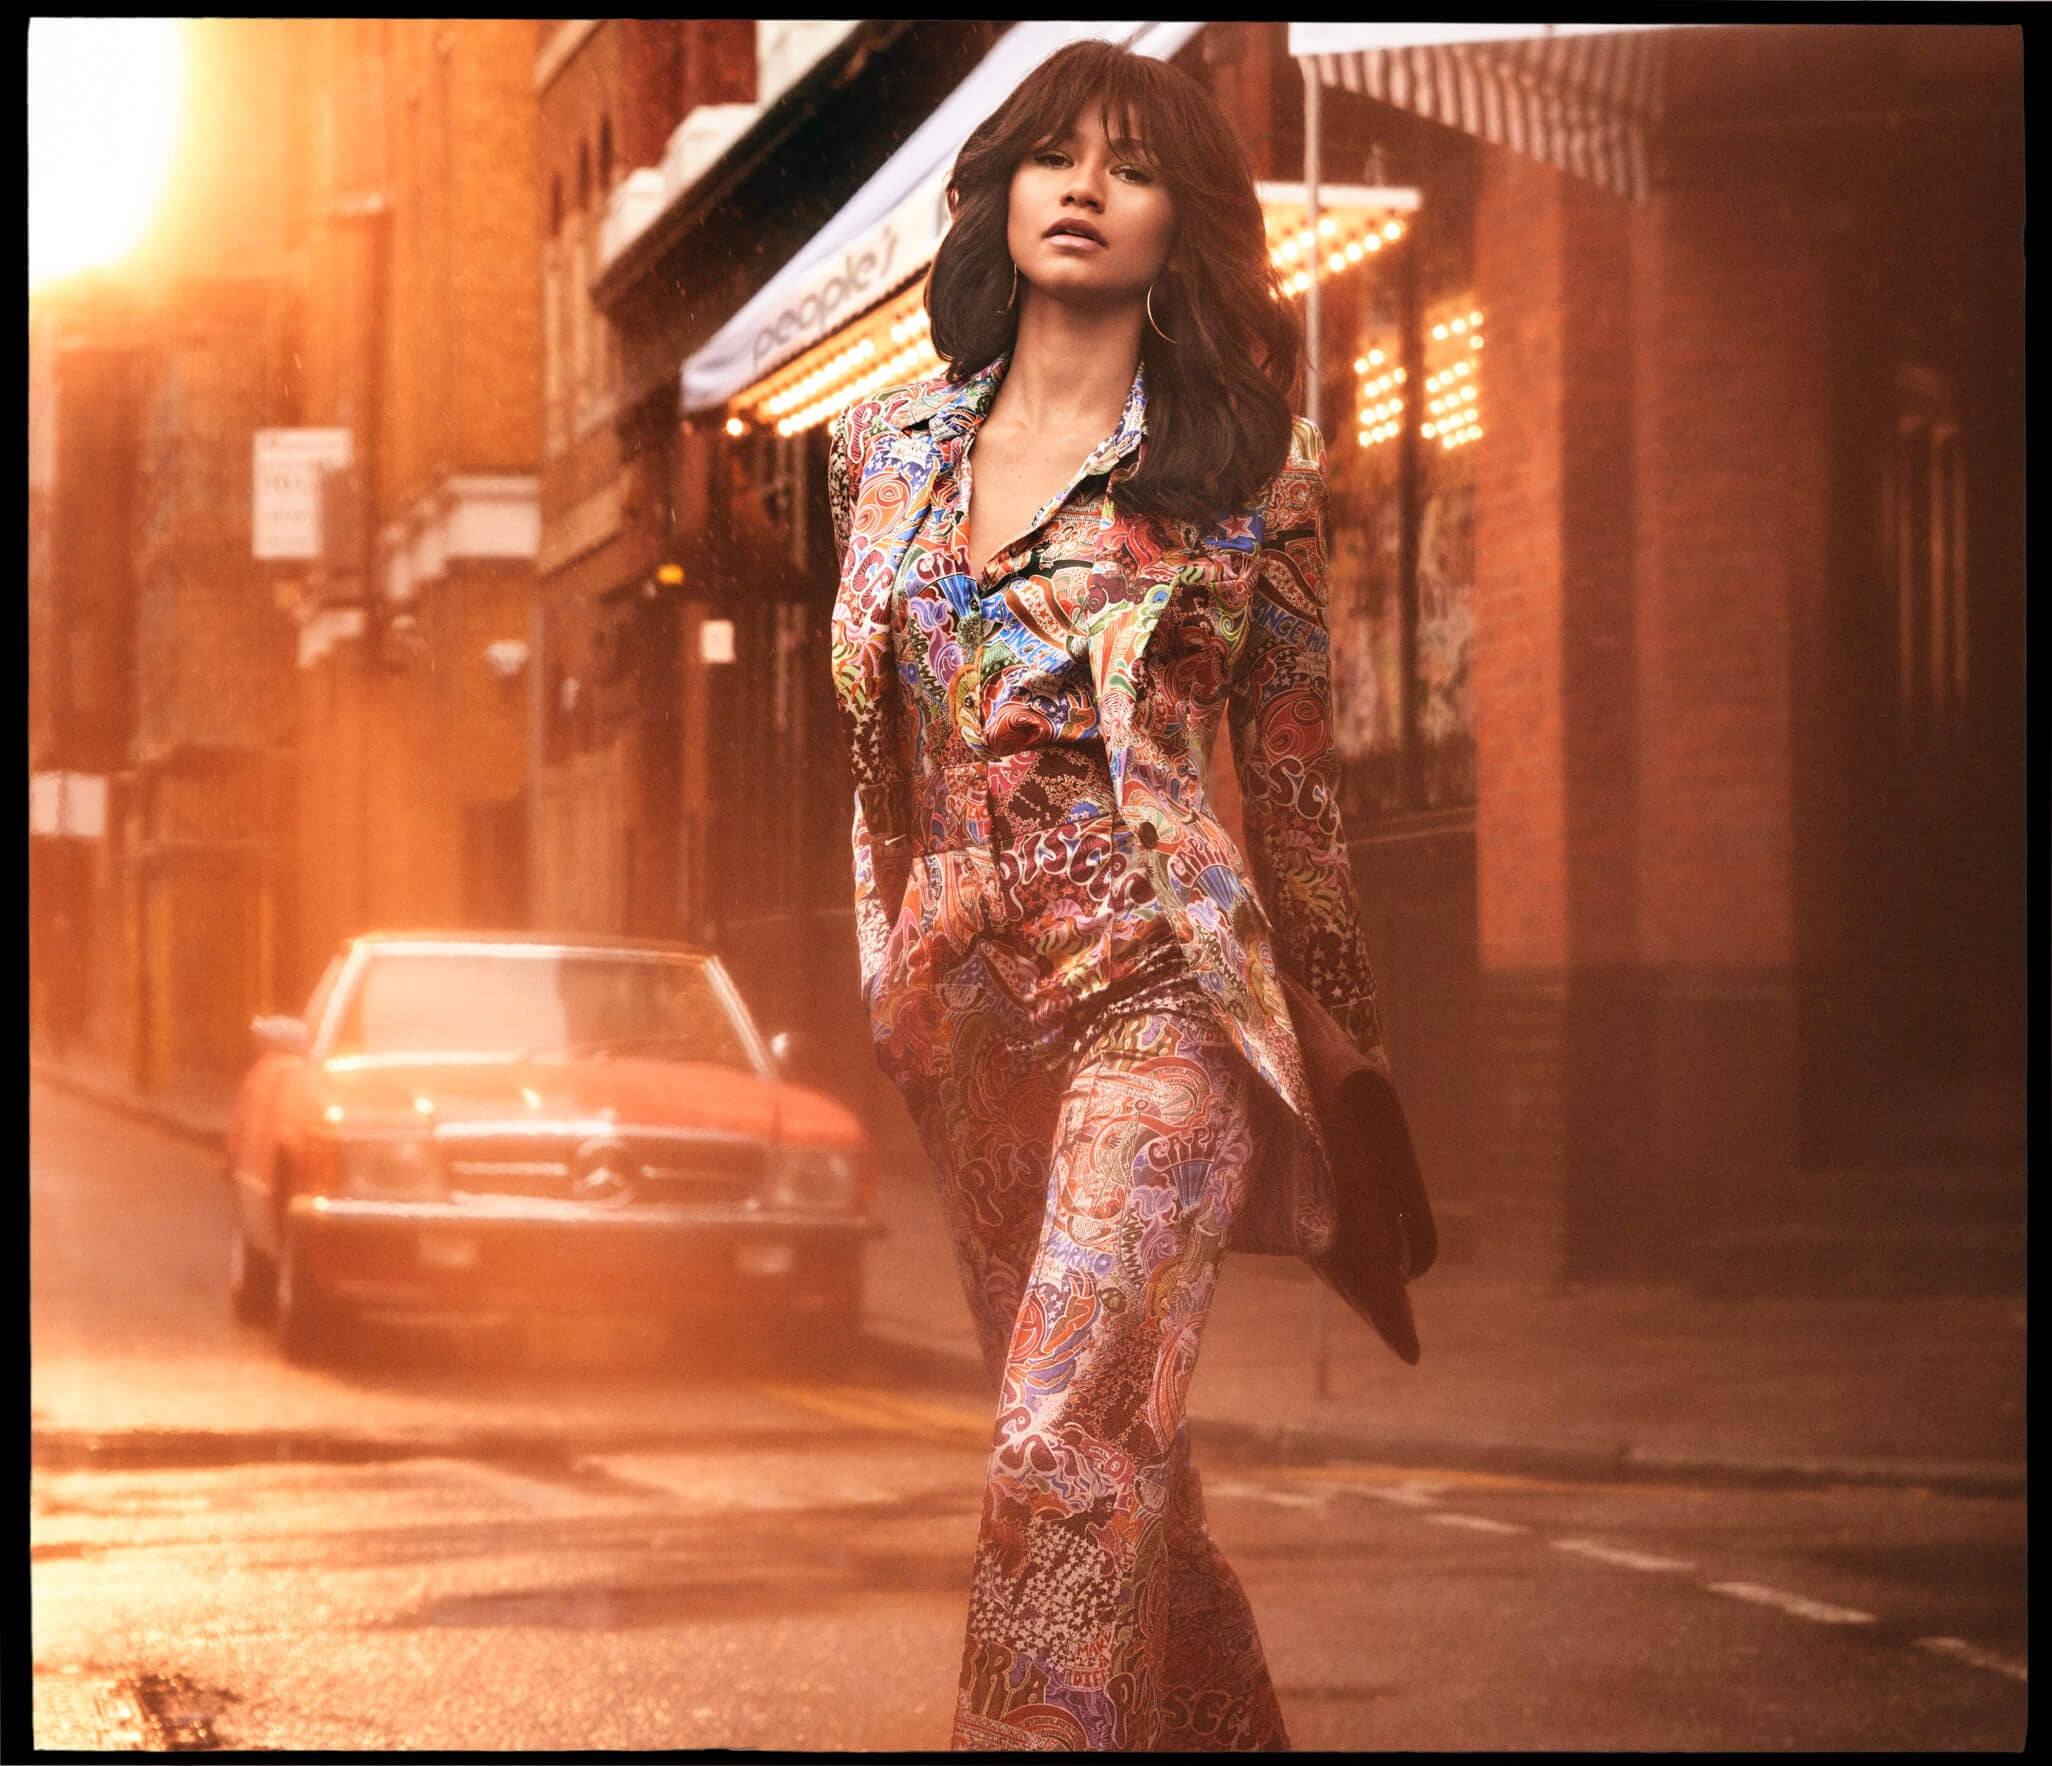 dedb50be Designed in a vibrant print, Zendaya wears a blouse, pant and jacket from  the